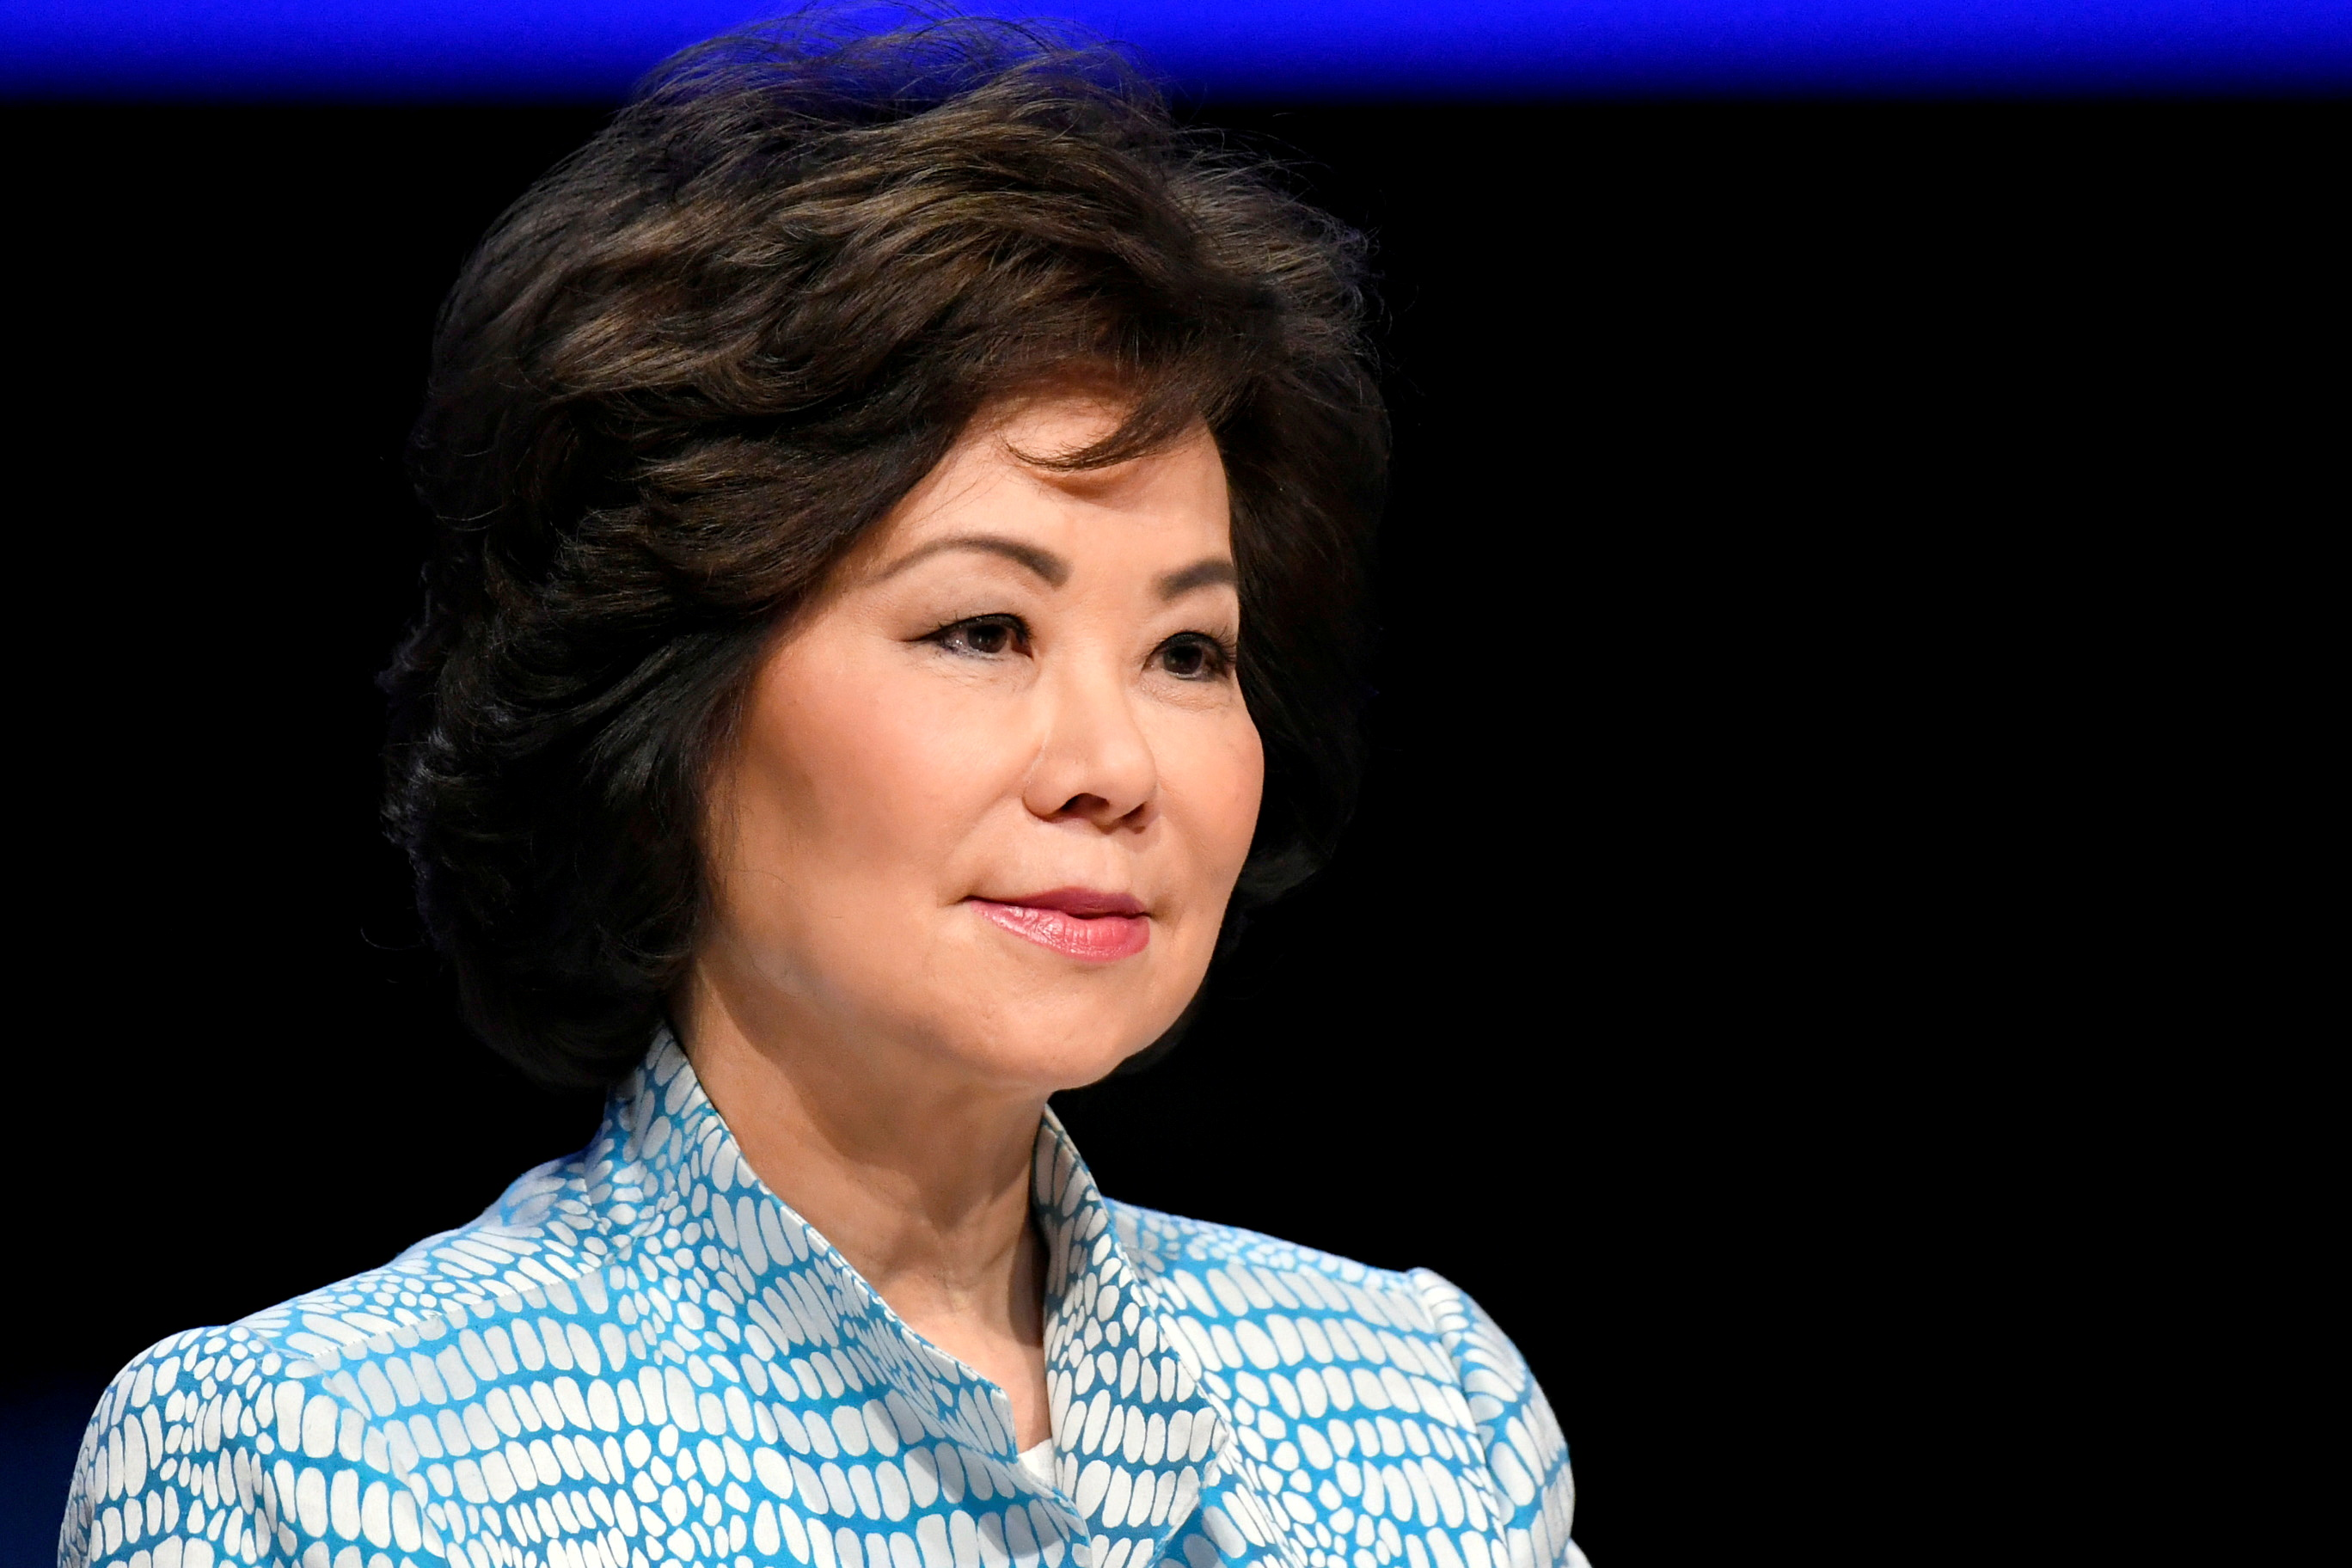 Elaine Chao, the US secretary of transportation, speaking at the Global Entrepreneurship Summit 2019 (GES 2019) in The Hague, Netherlands on June 4, 2019. (Photo by Reuters)